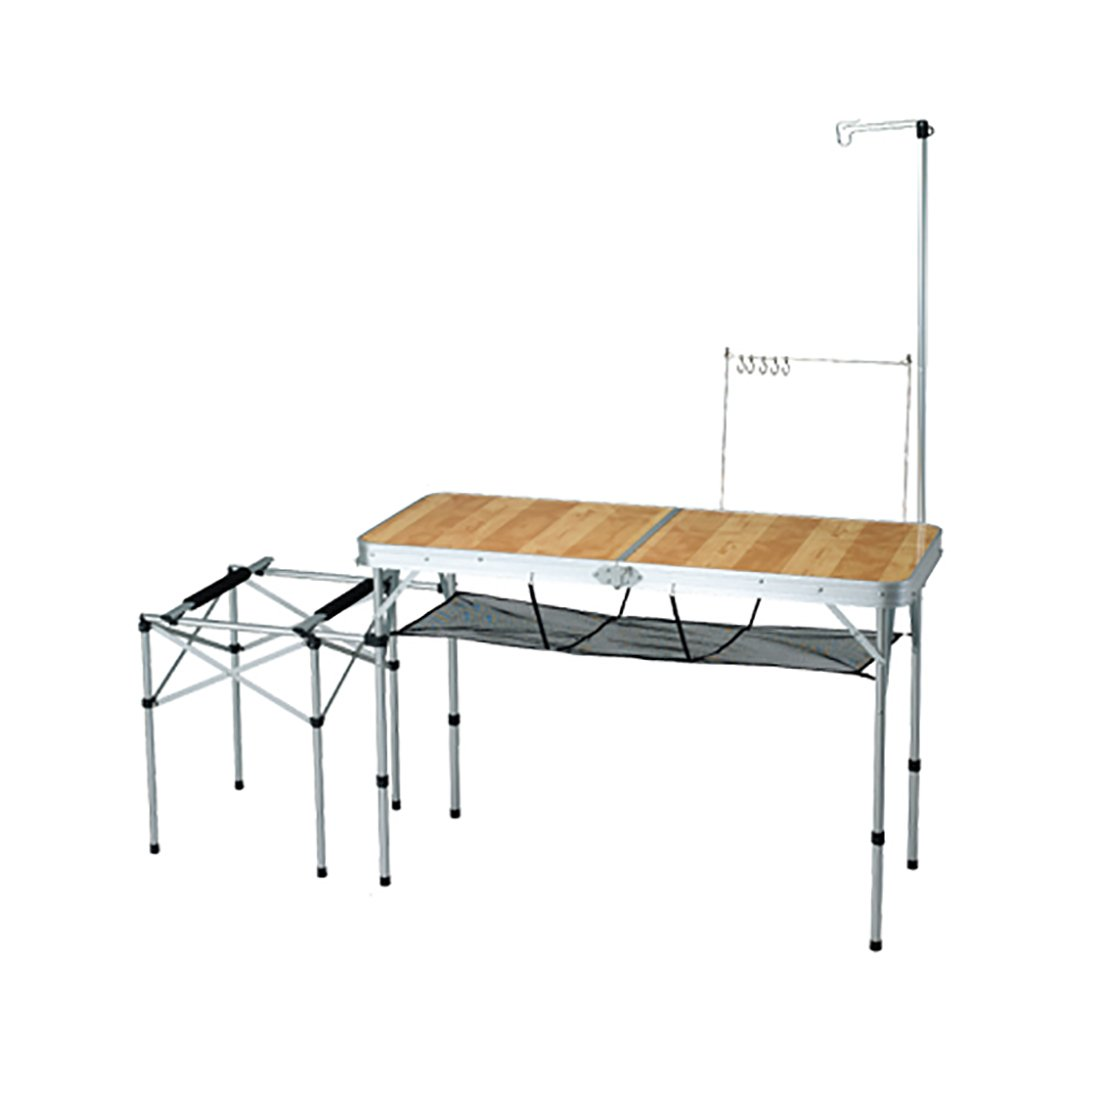 2 way kitchen table large II by Kovea